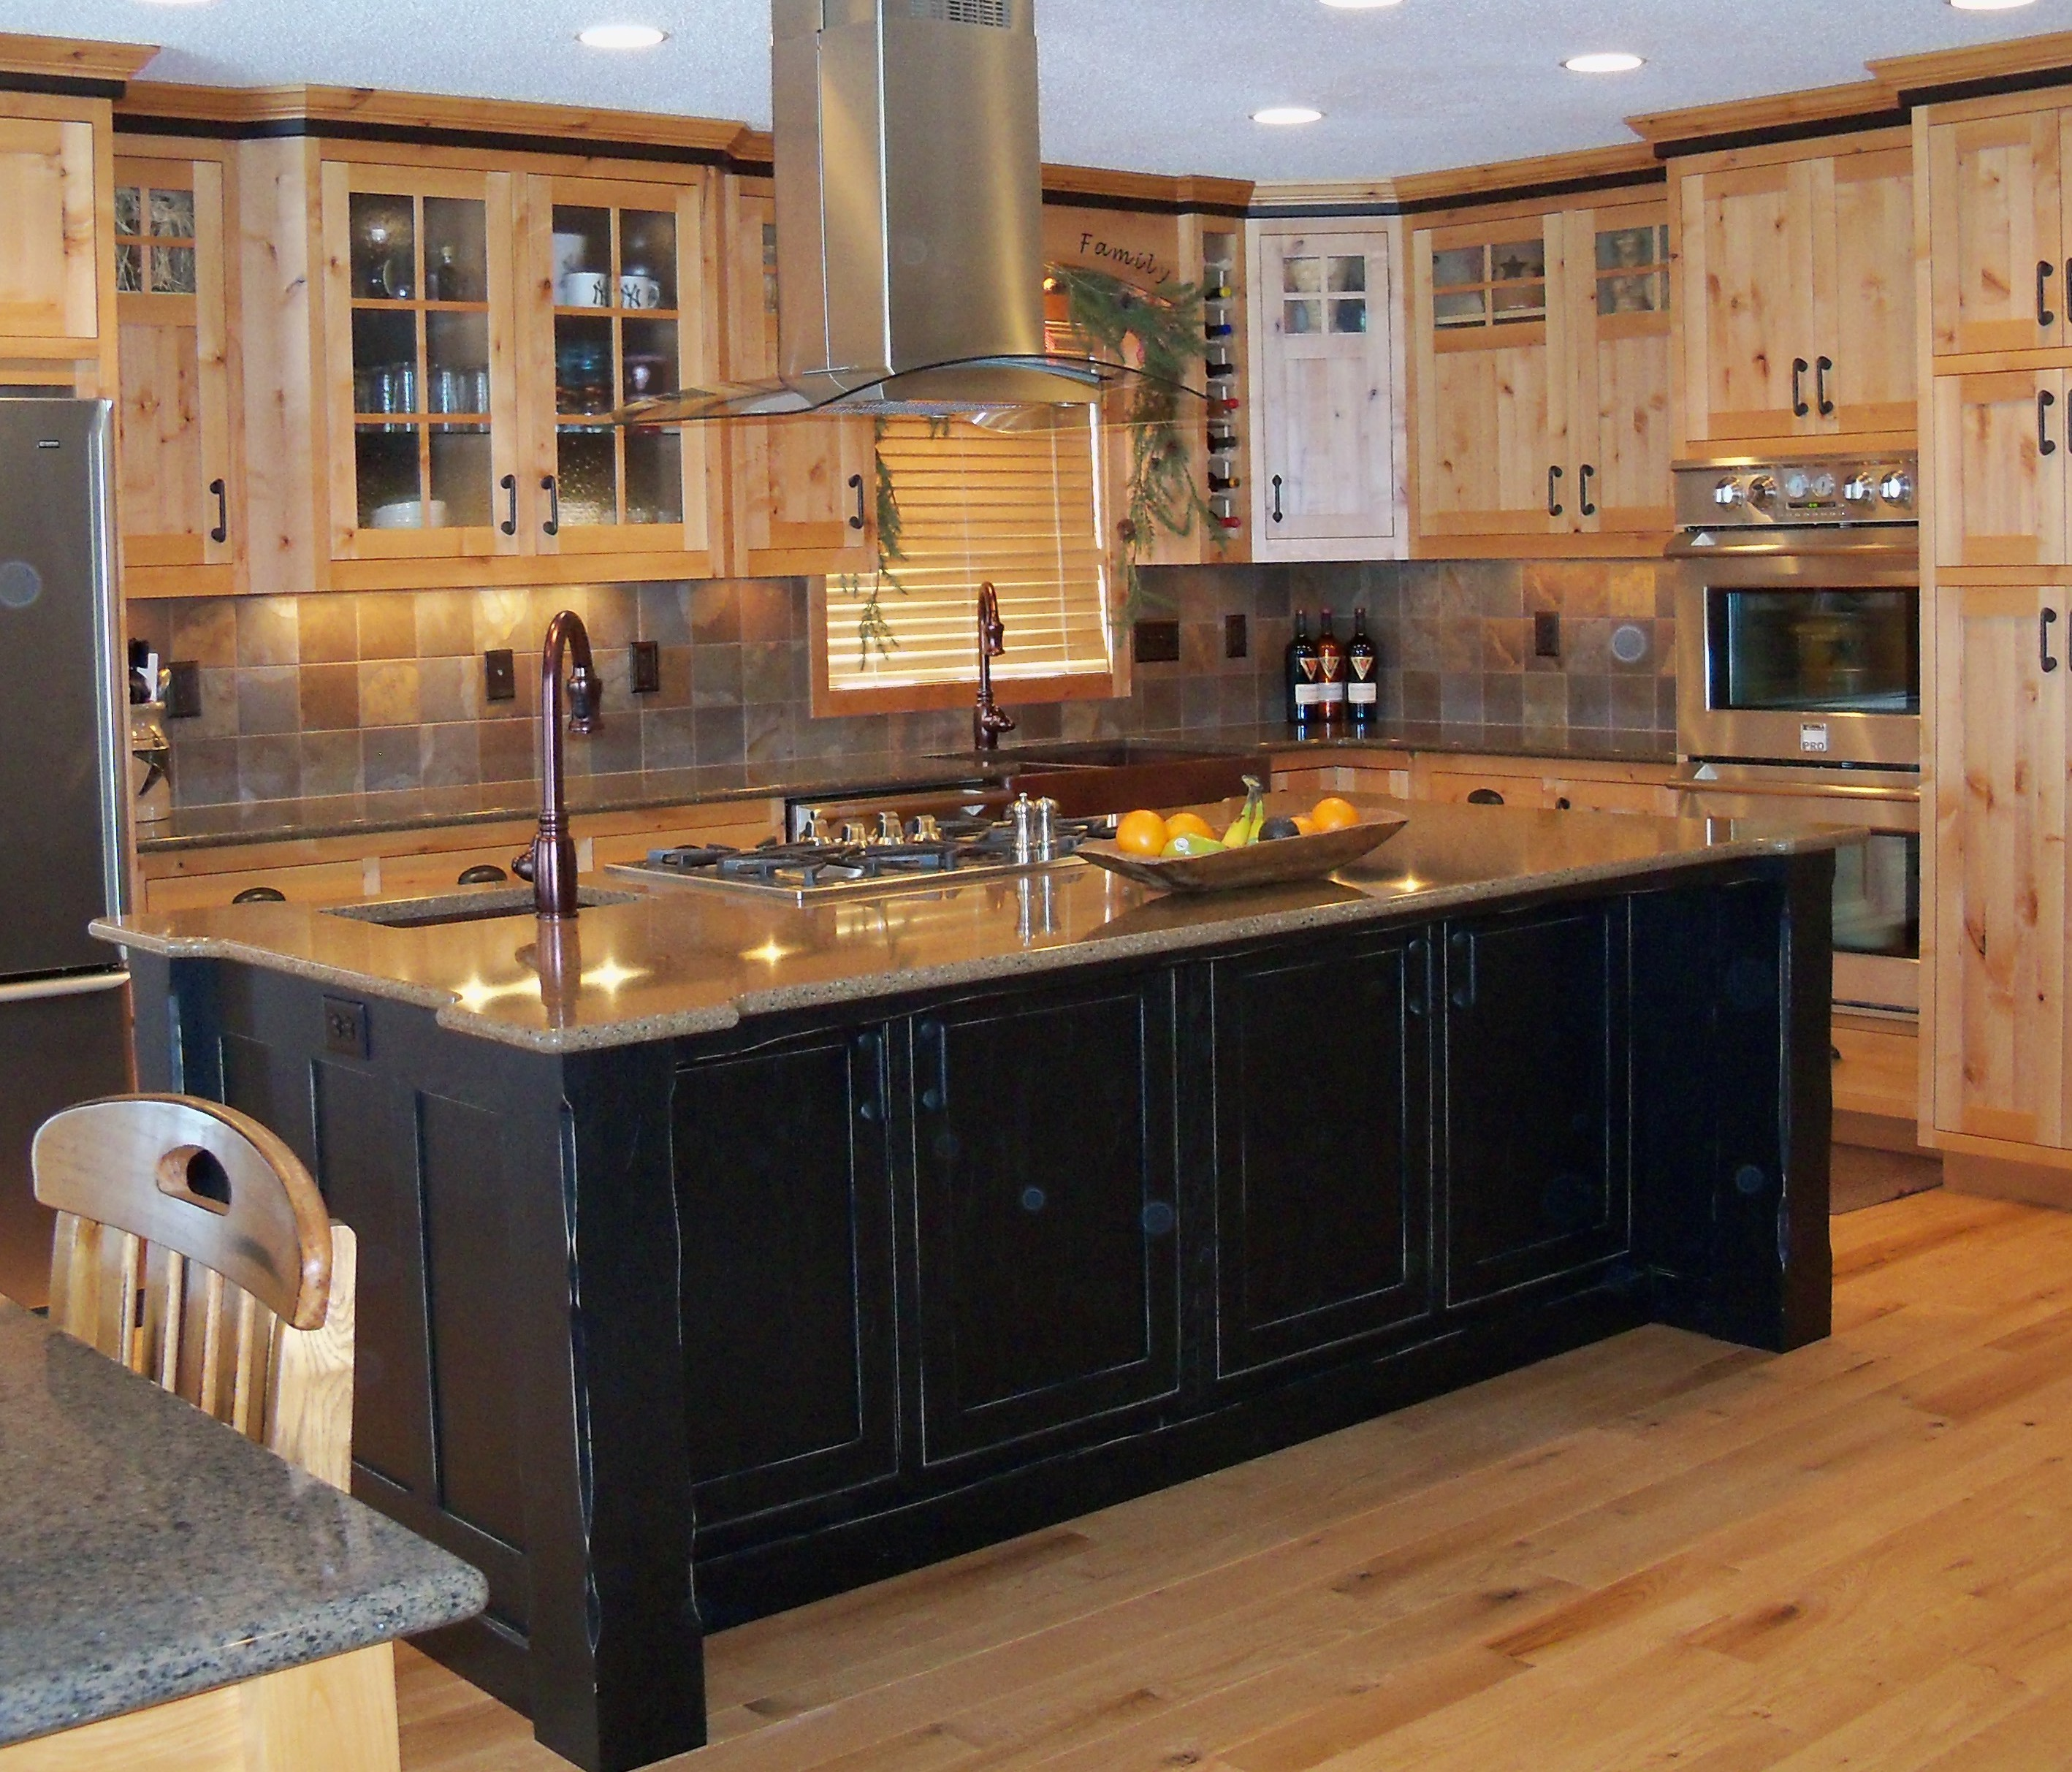 Natural Oak Cabinets Best Of 20 Amazing White Oak Cabinets: Using Wall Cabinets As Bases For A Unique Kitchen Island